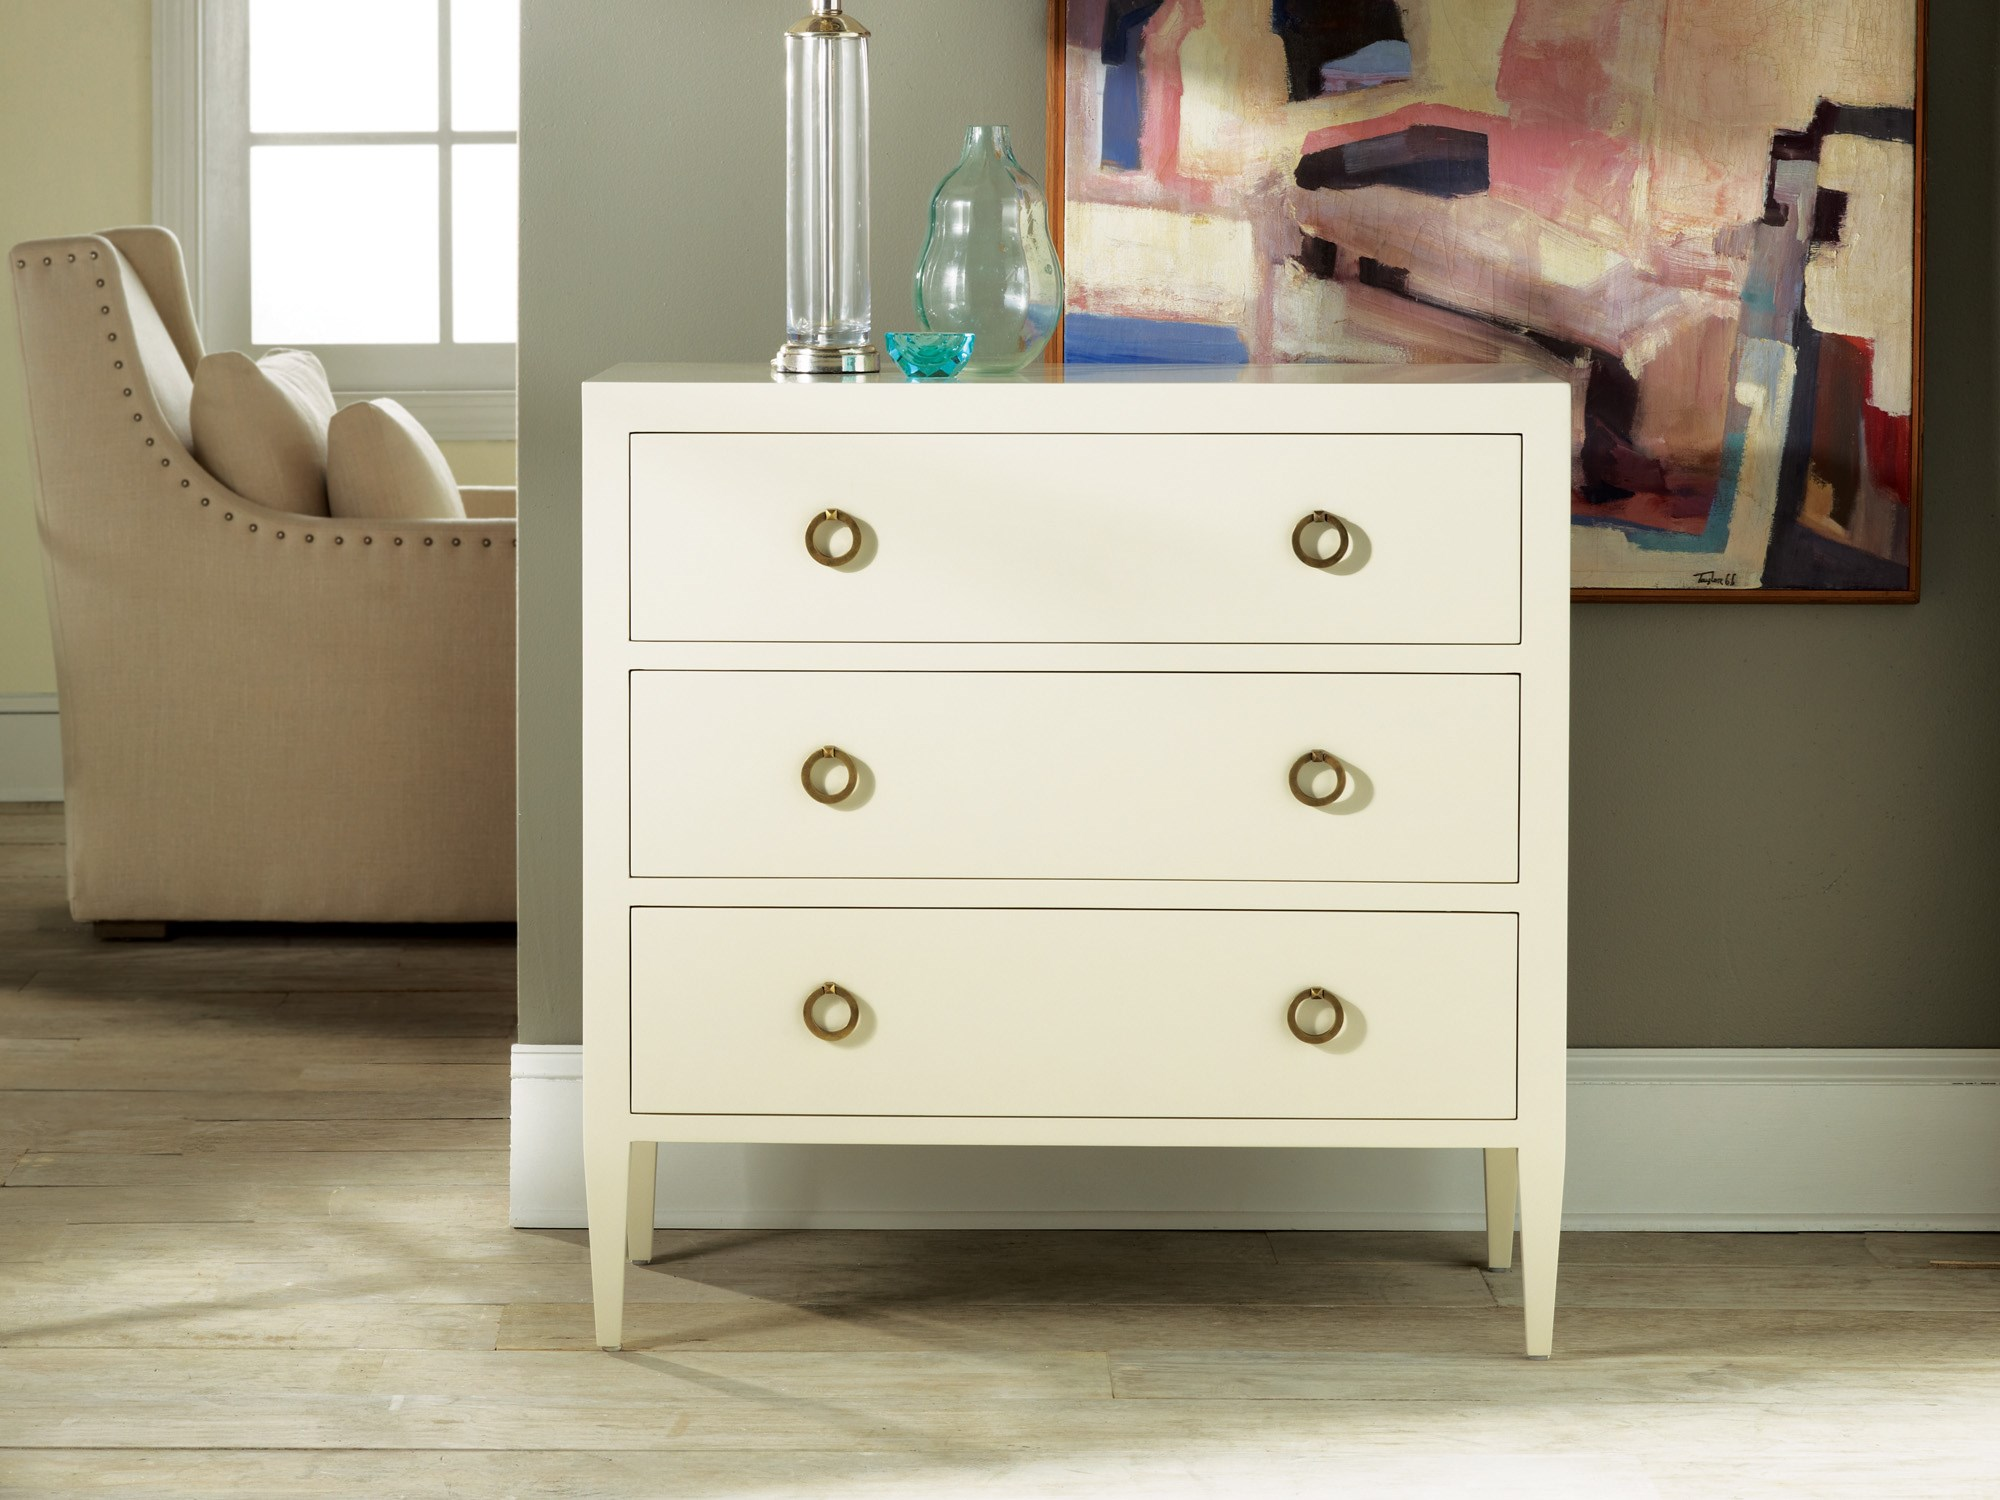 chests  english chests  british chests  contemporary chests  - painted three drawer chest on legs mhf